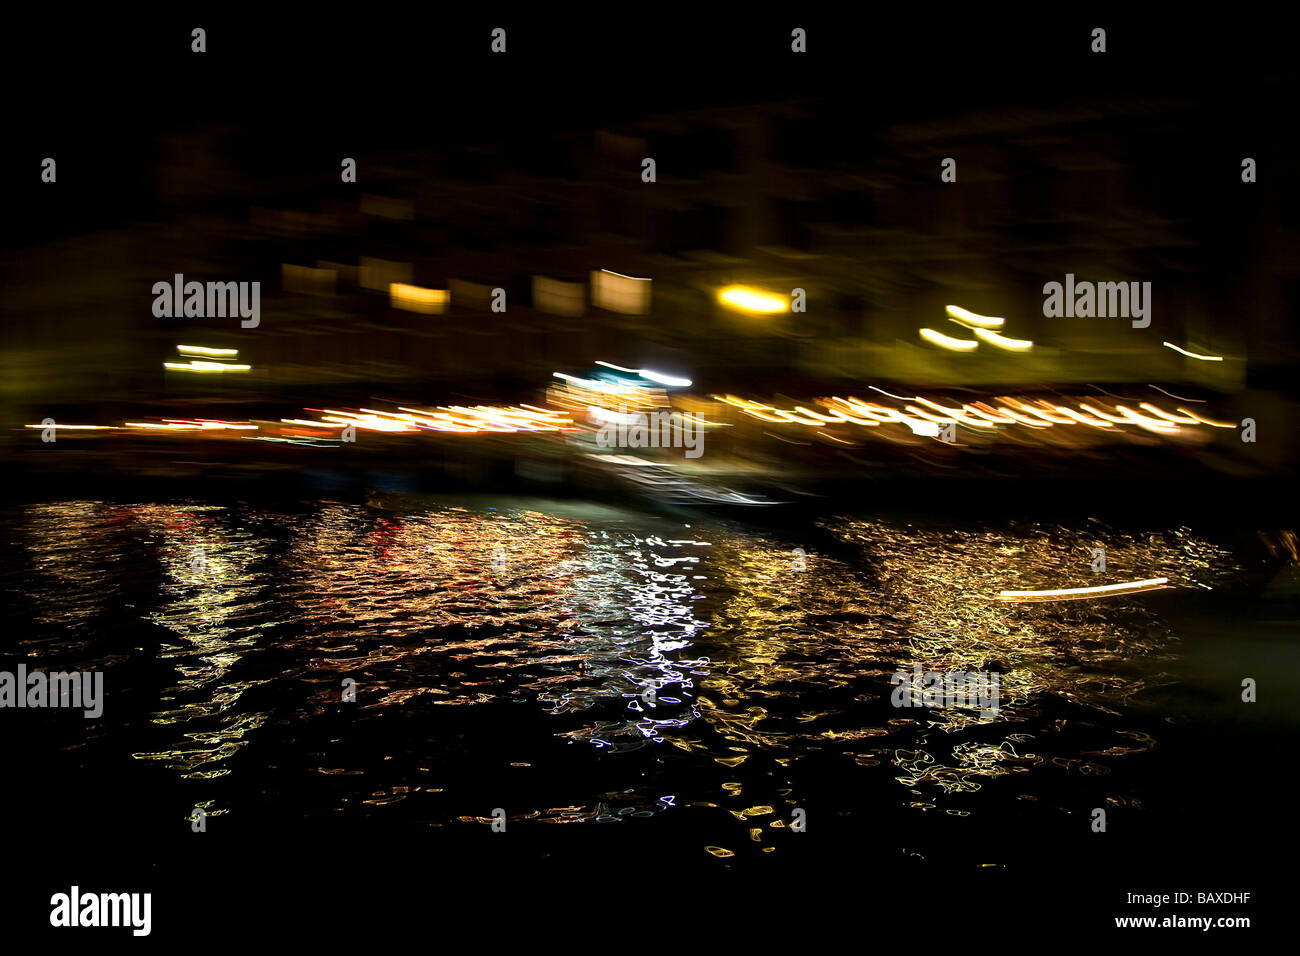 Water at night reflected light - Stock Image